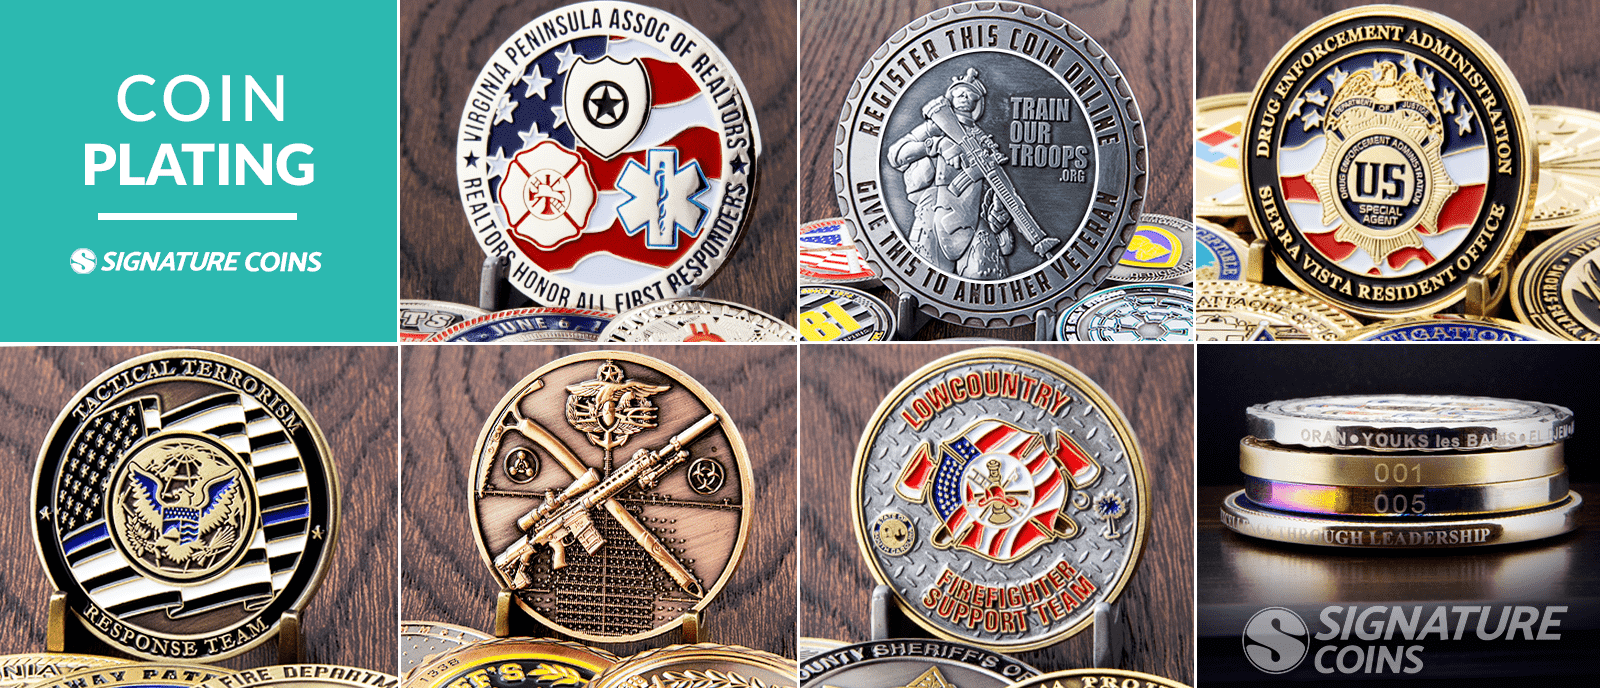 signature coins challenge coin plating